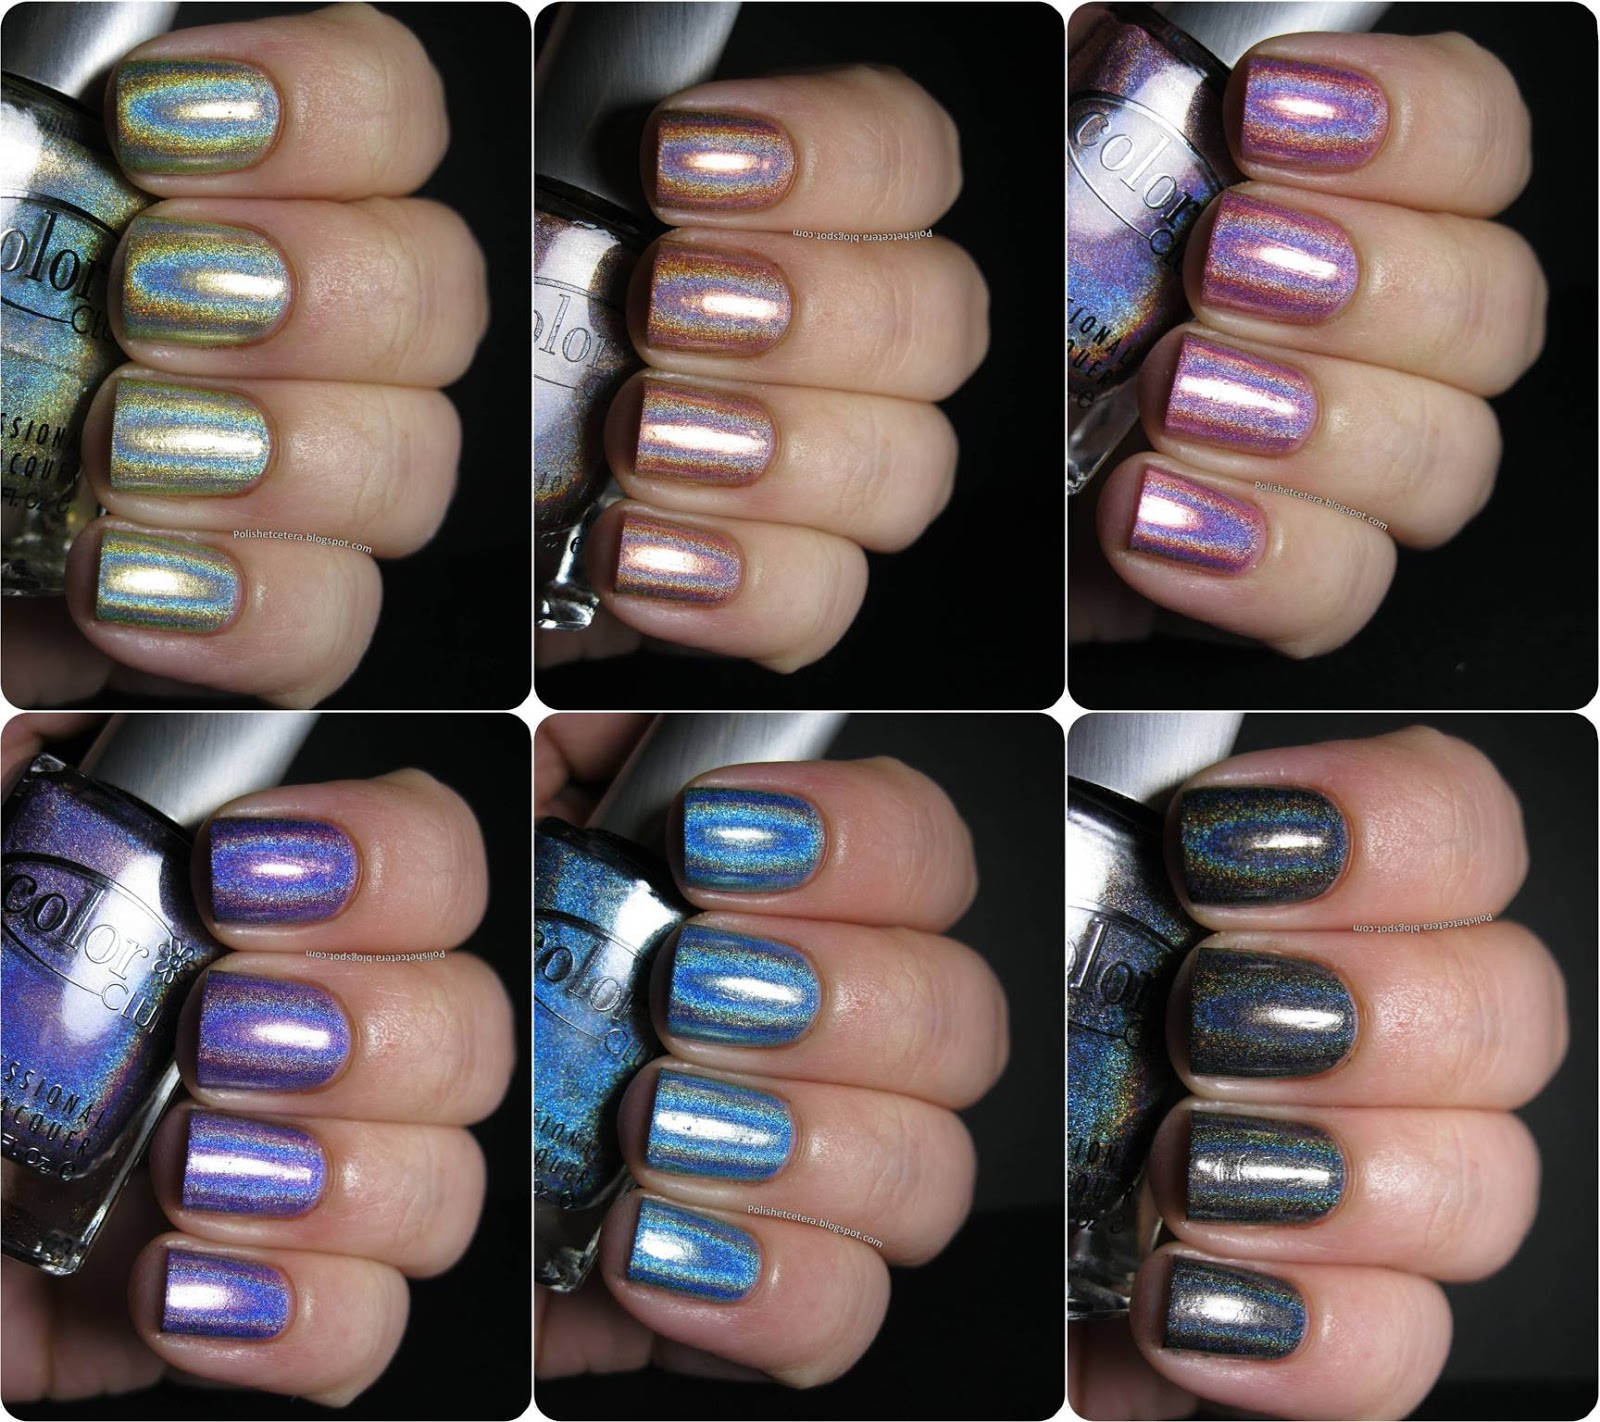 Color Club Holographic Nail Polish Swatches: Color Club Holo Hues 2013 Swatches And Comparisons